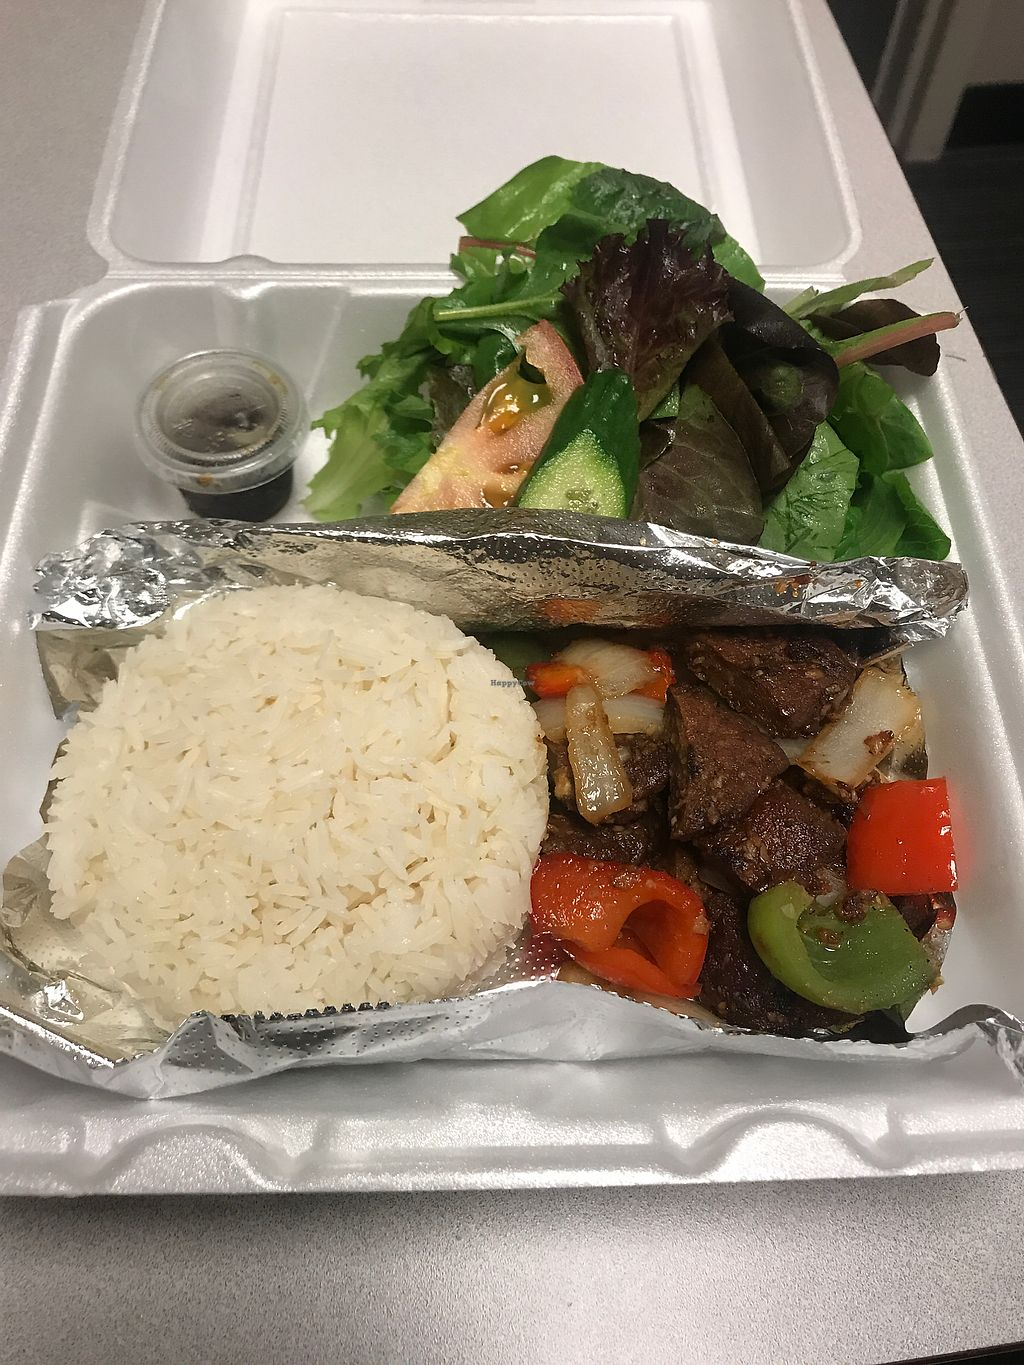 """Photo of Nibi Pho Bistro  by <a href=""""/members/profile/Vegan_Ness"""">Vegan_Ness</a> <br/>Vegan Steak  <br/> August 15, 2017  - <a href='/contact/abuse/image/67822/293066'>Report</a>"""